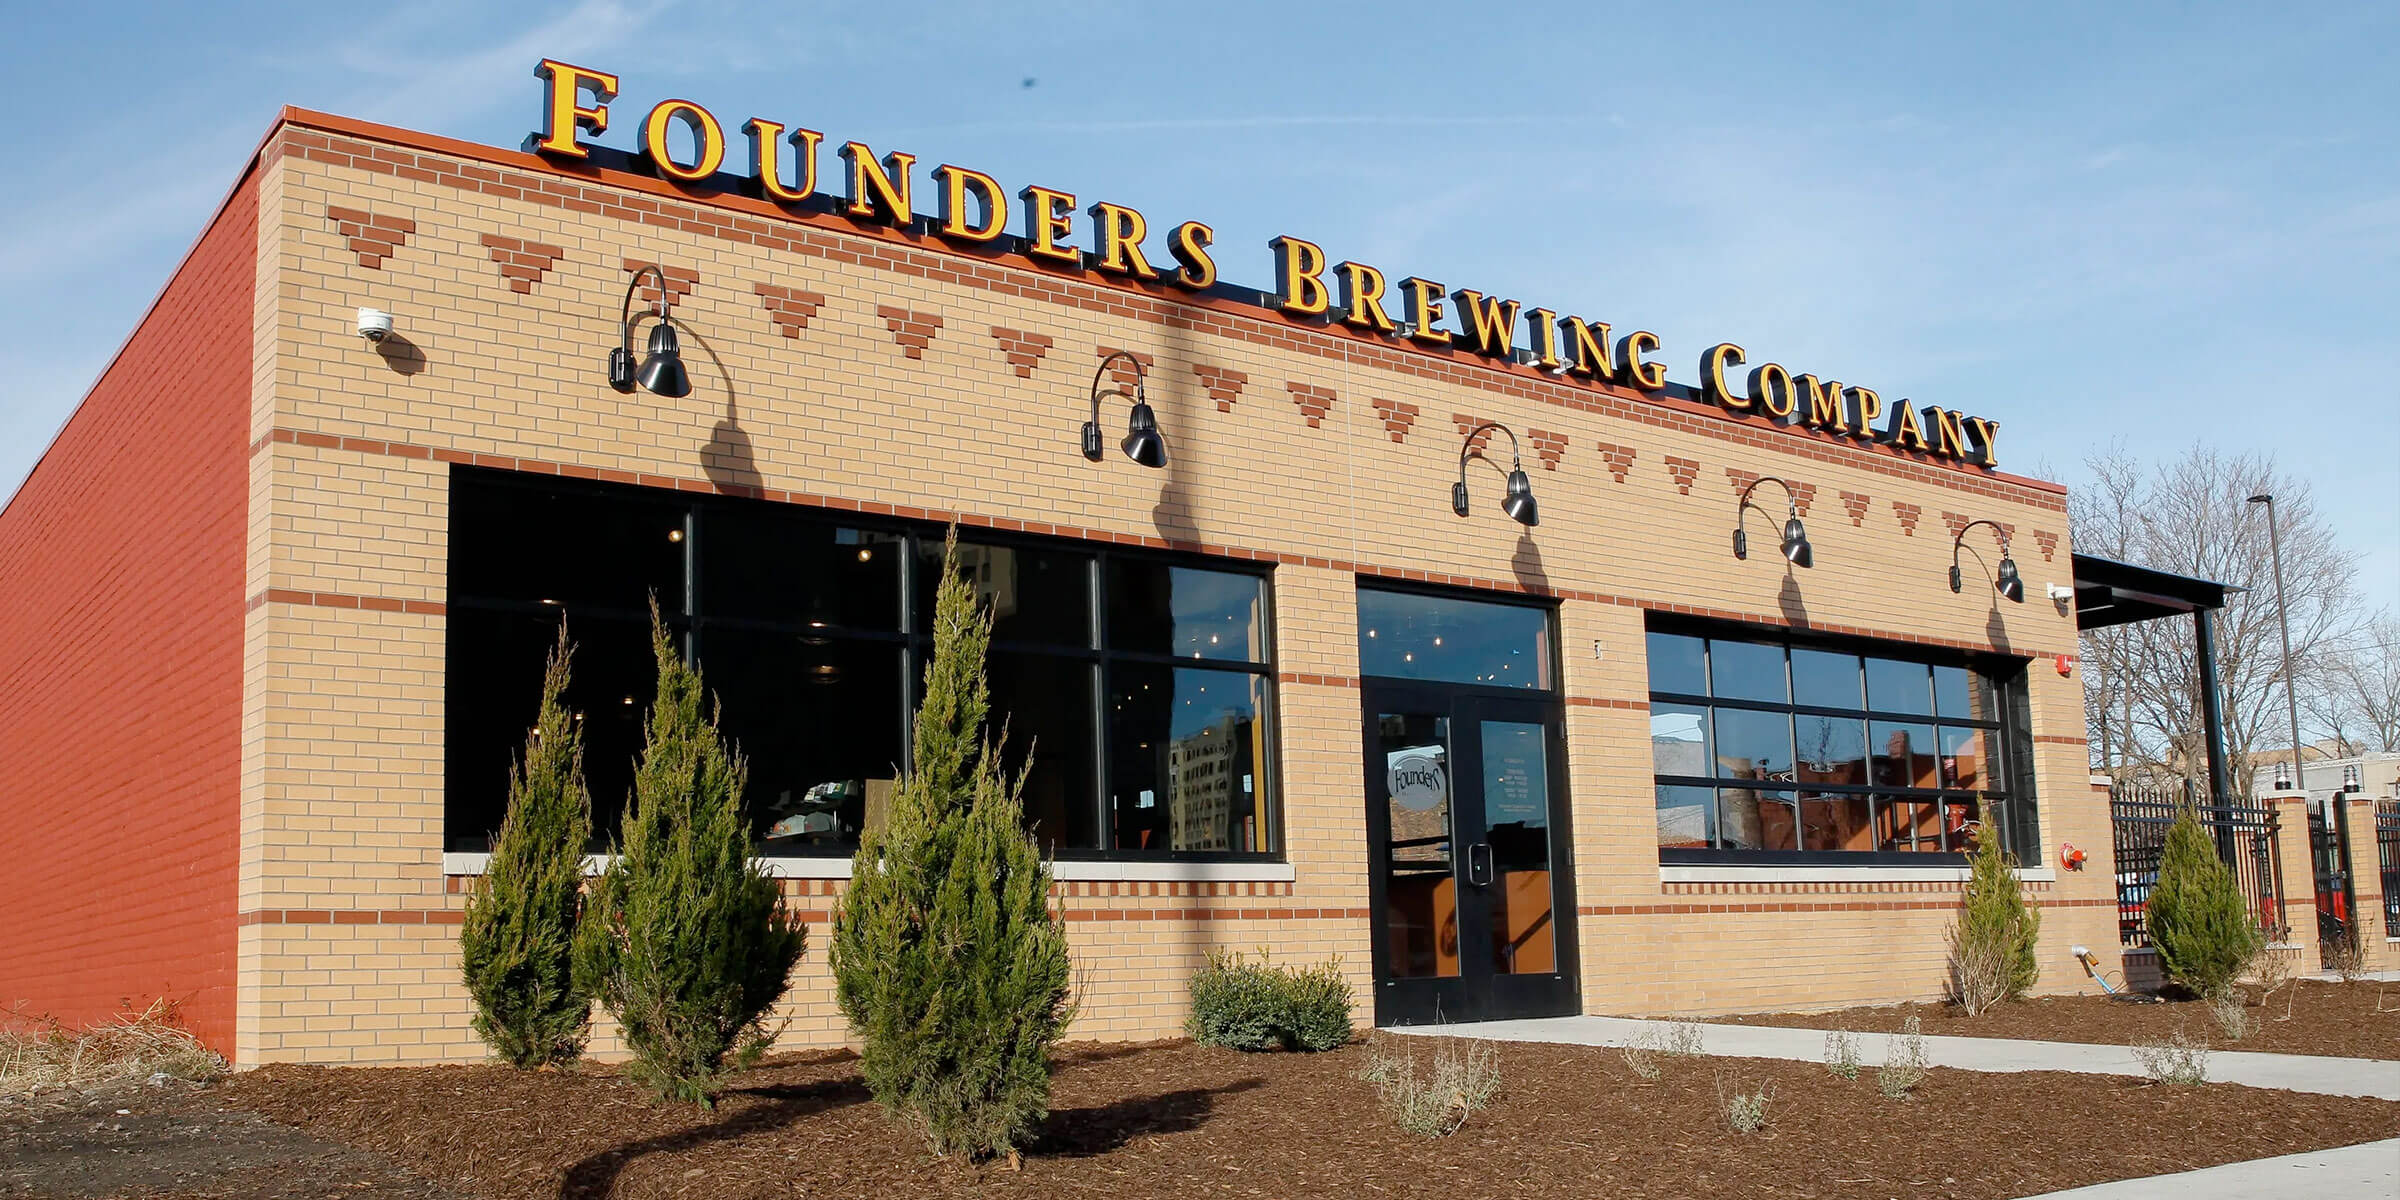 Outside the entrance to the Founders Brewing Co. taproom in Detroit, Michigan